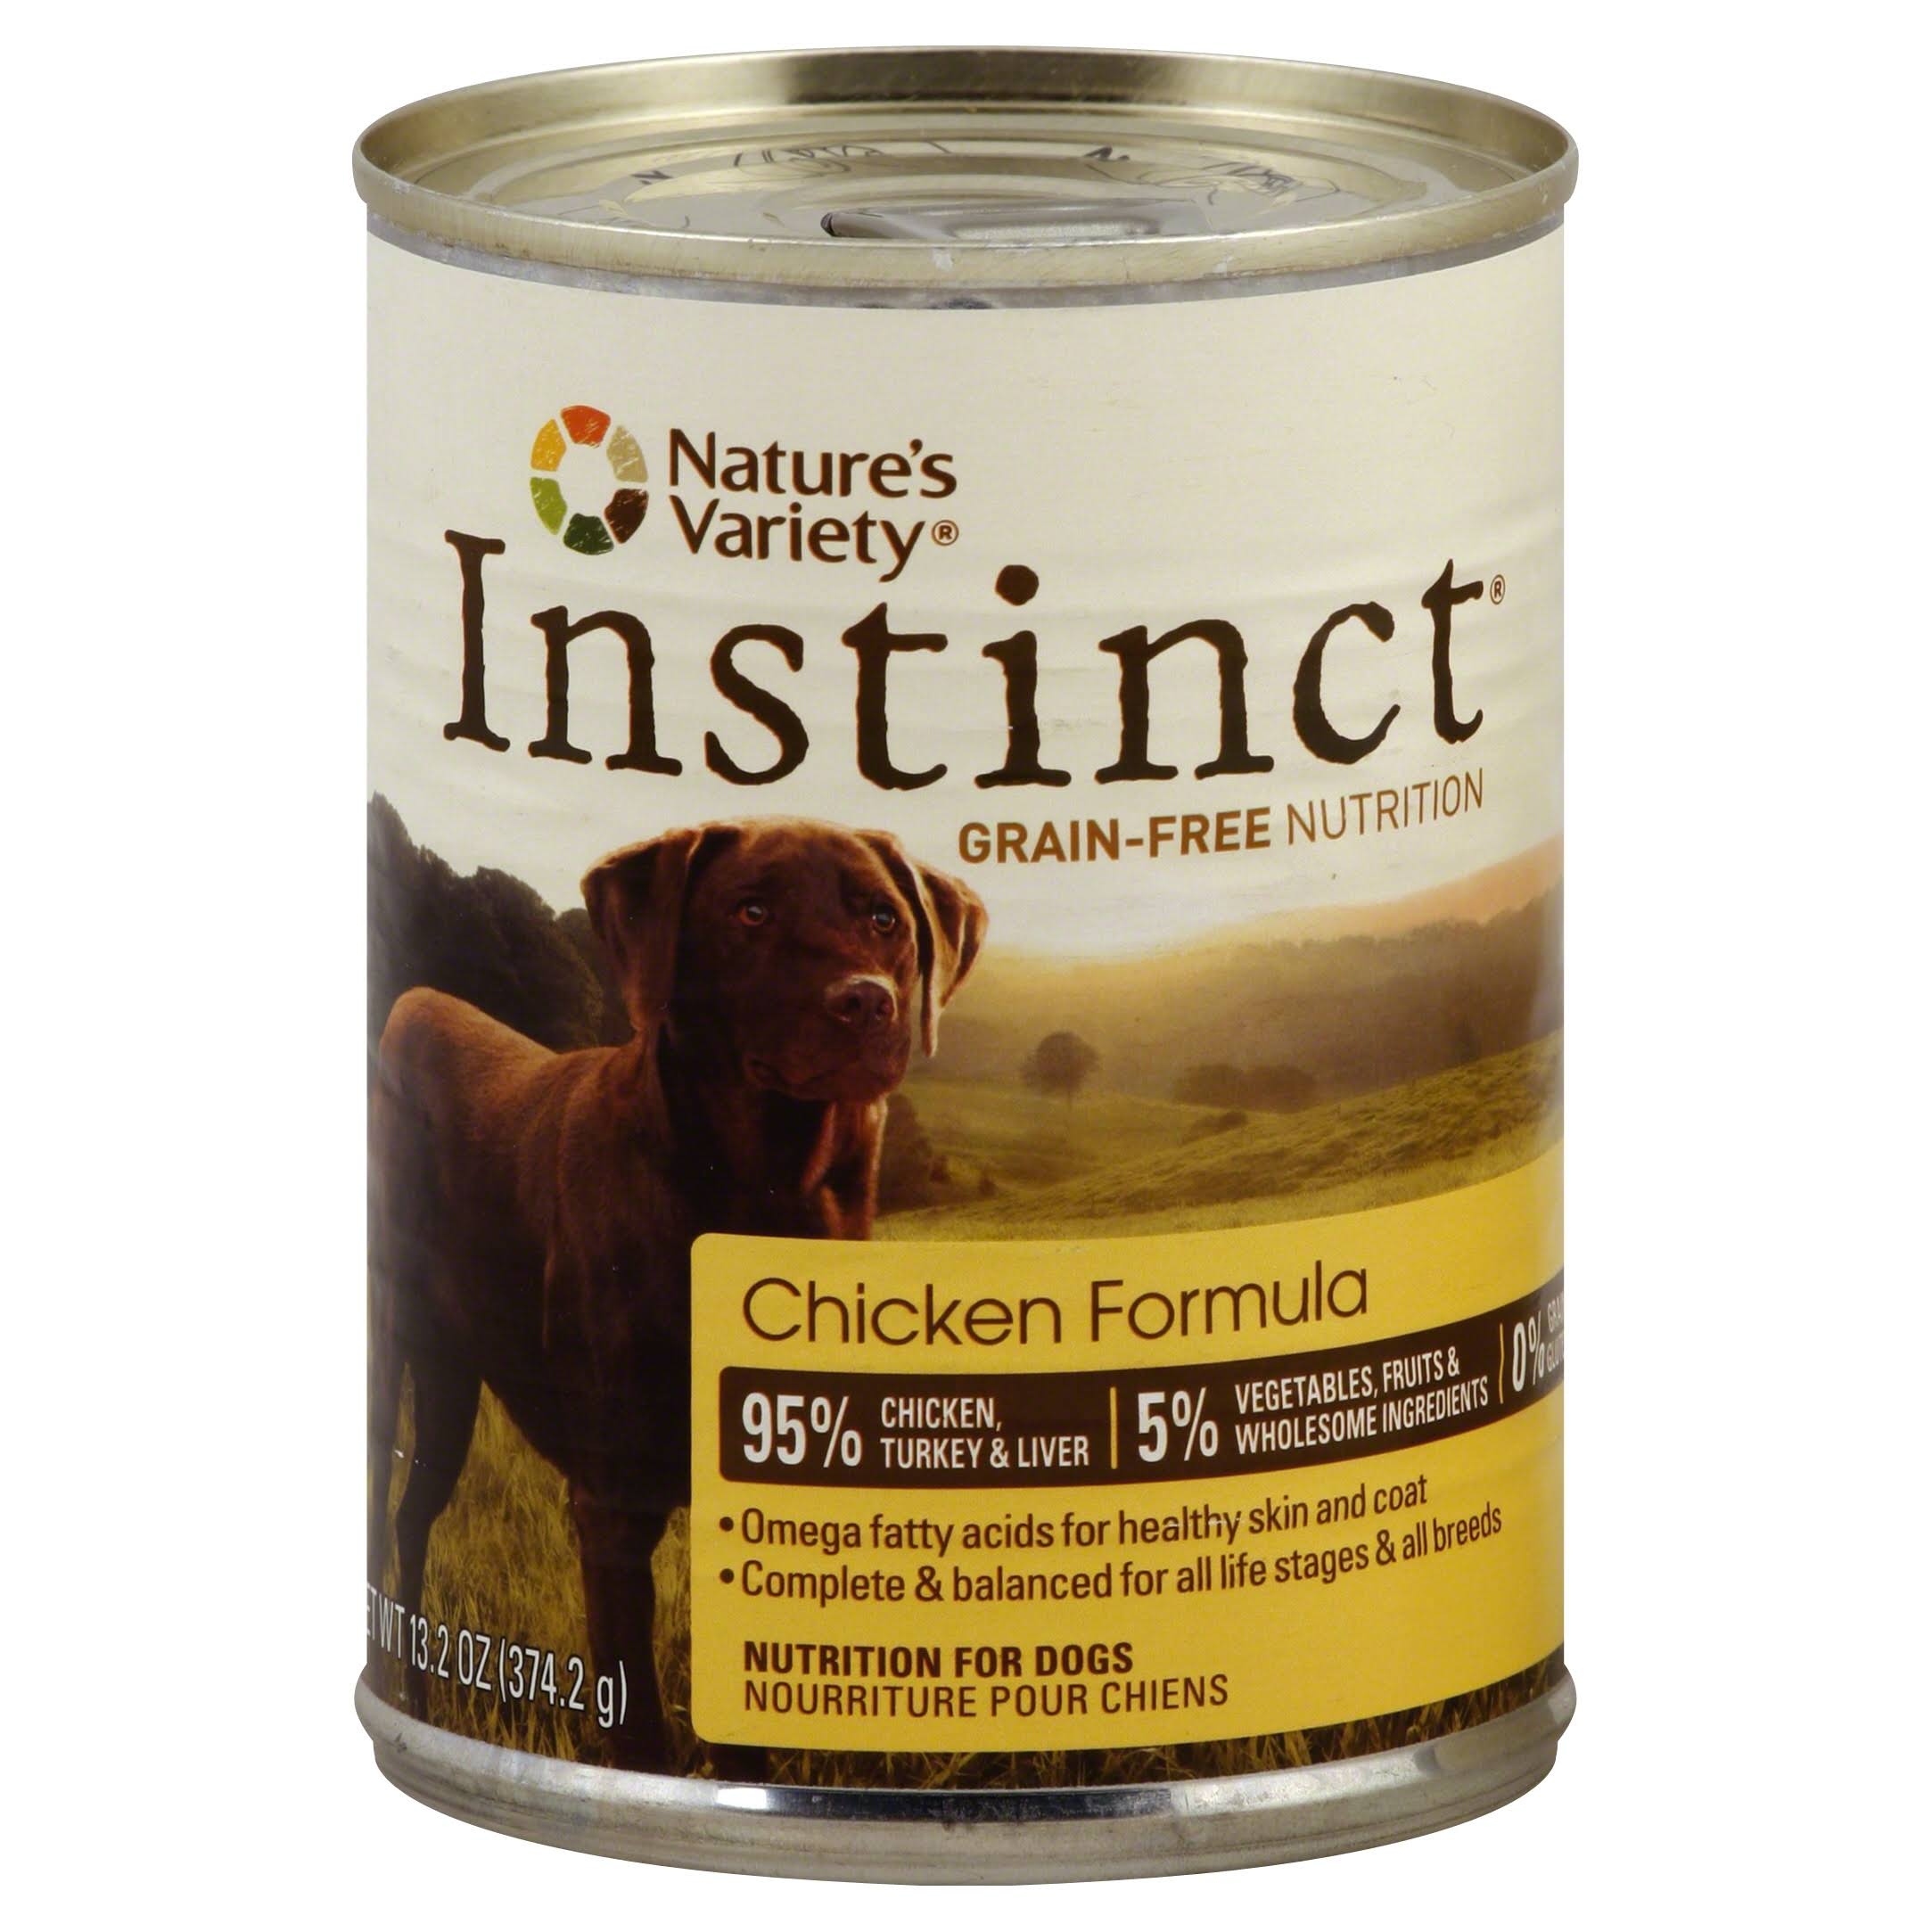 Nature's Variety Instinct Canned Dog Food – Chicken